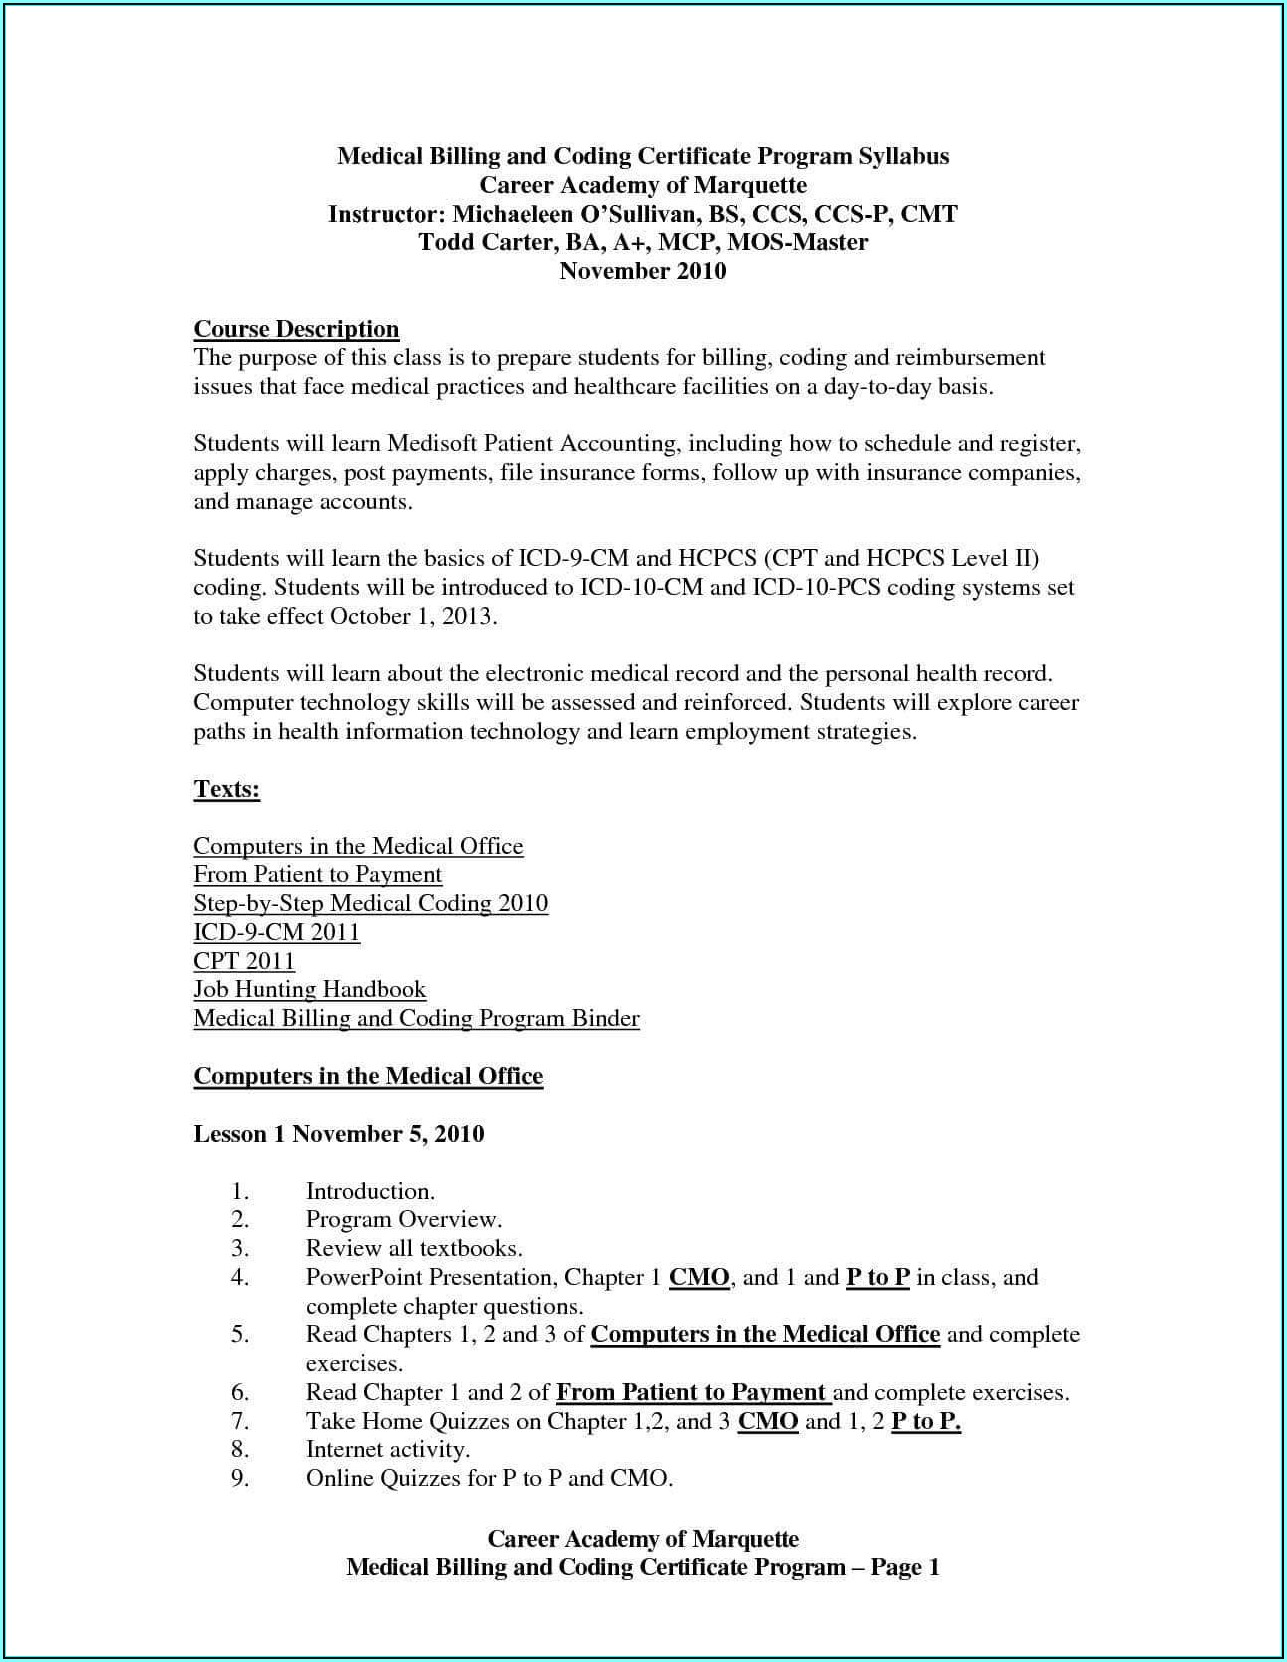 Resume For Medical Billing With Experience